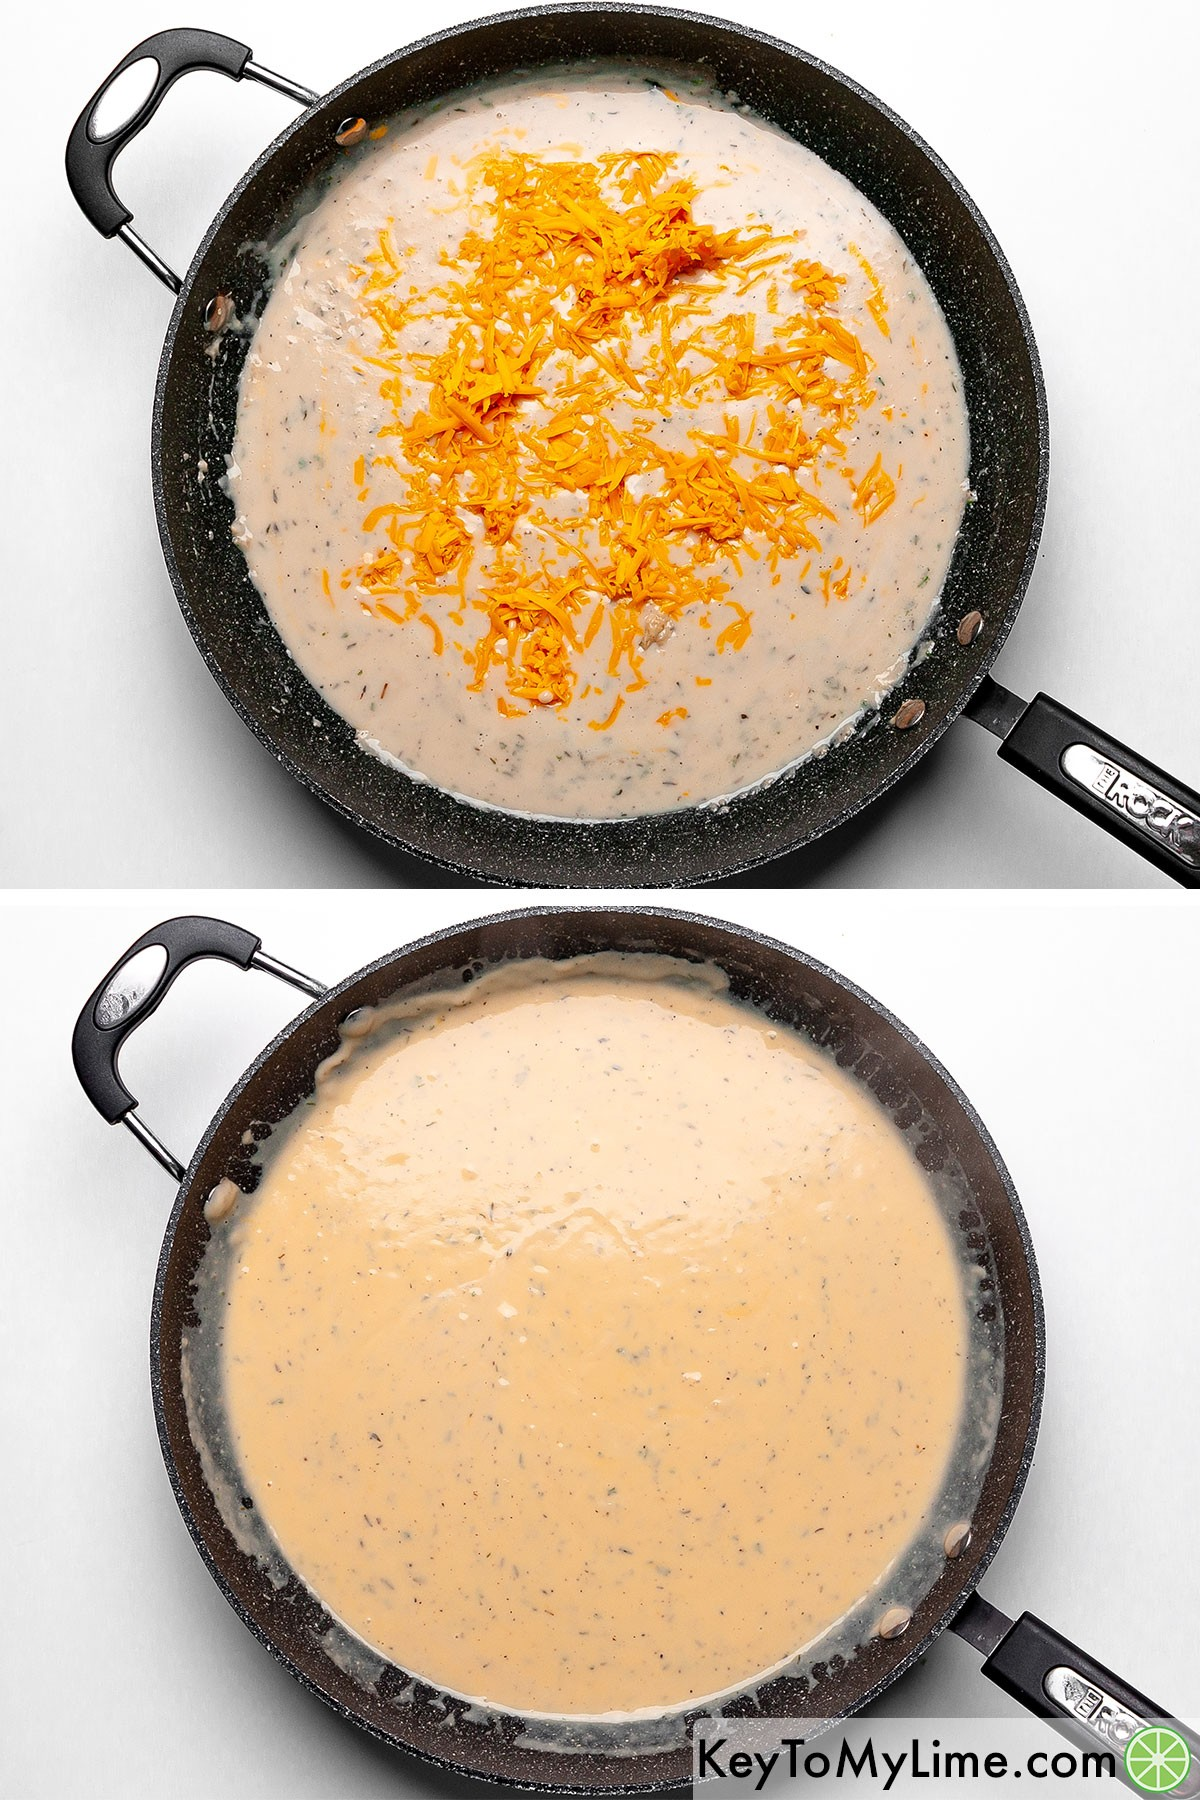 A process collage showing cheese being mixed into a thick creamy sauce.